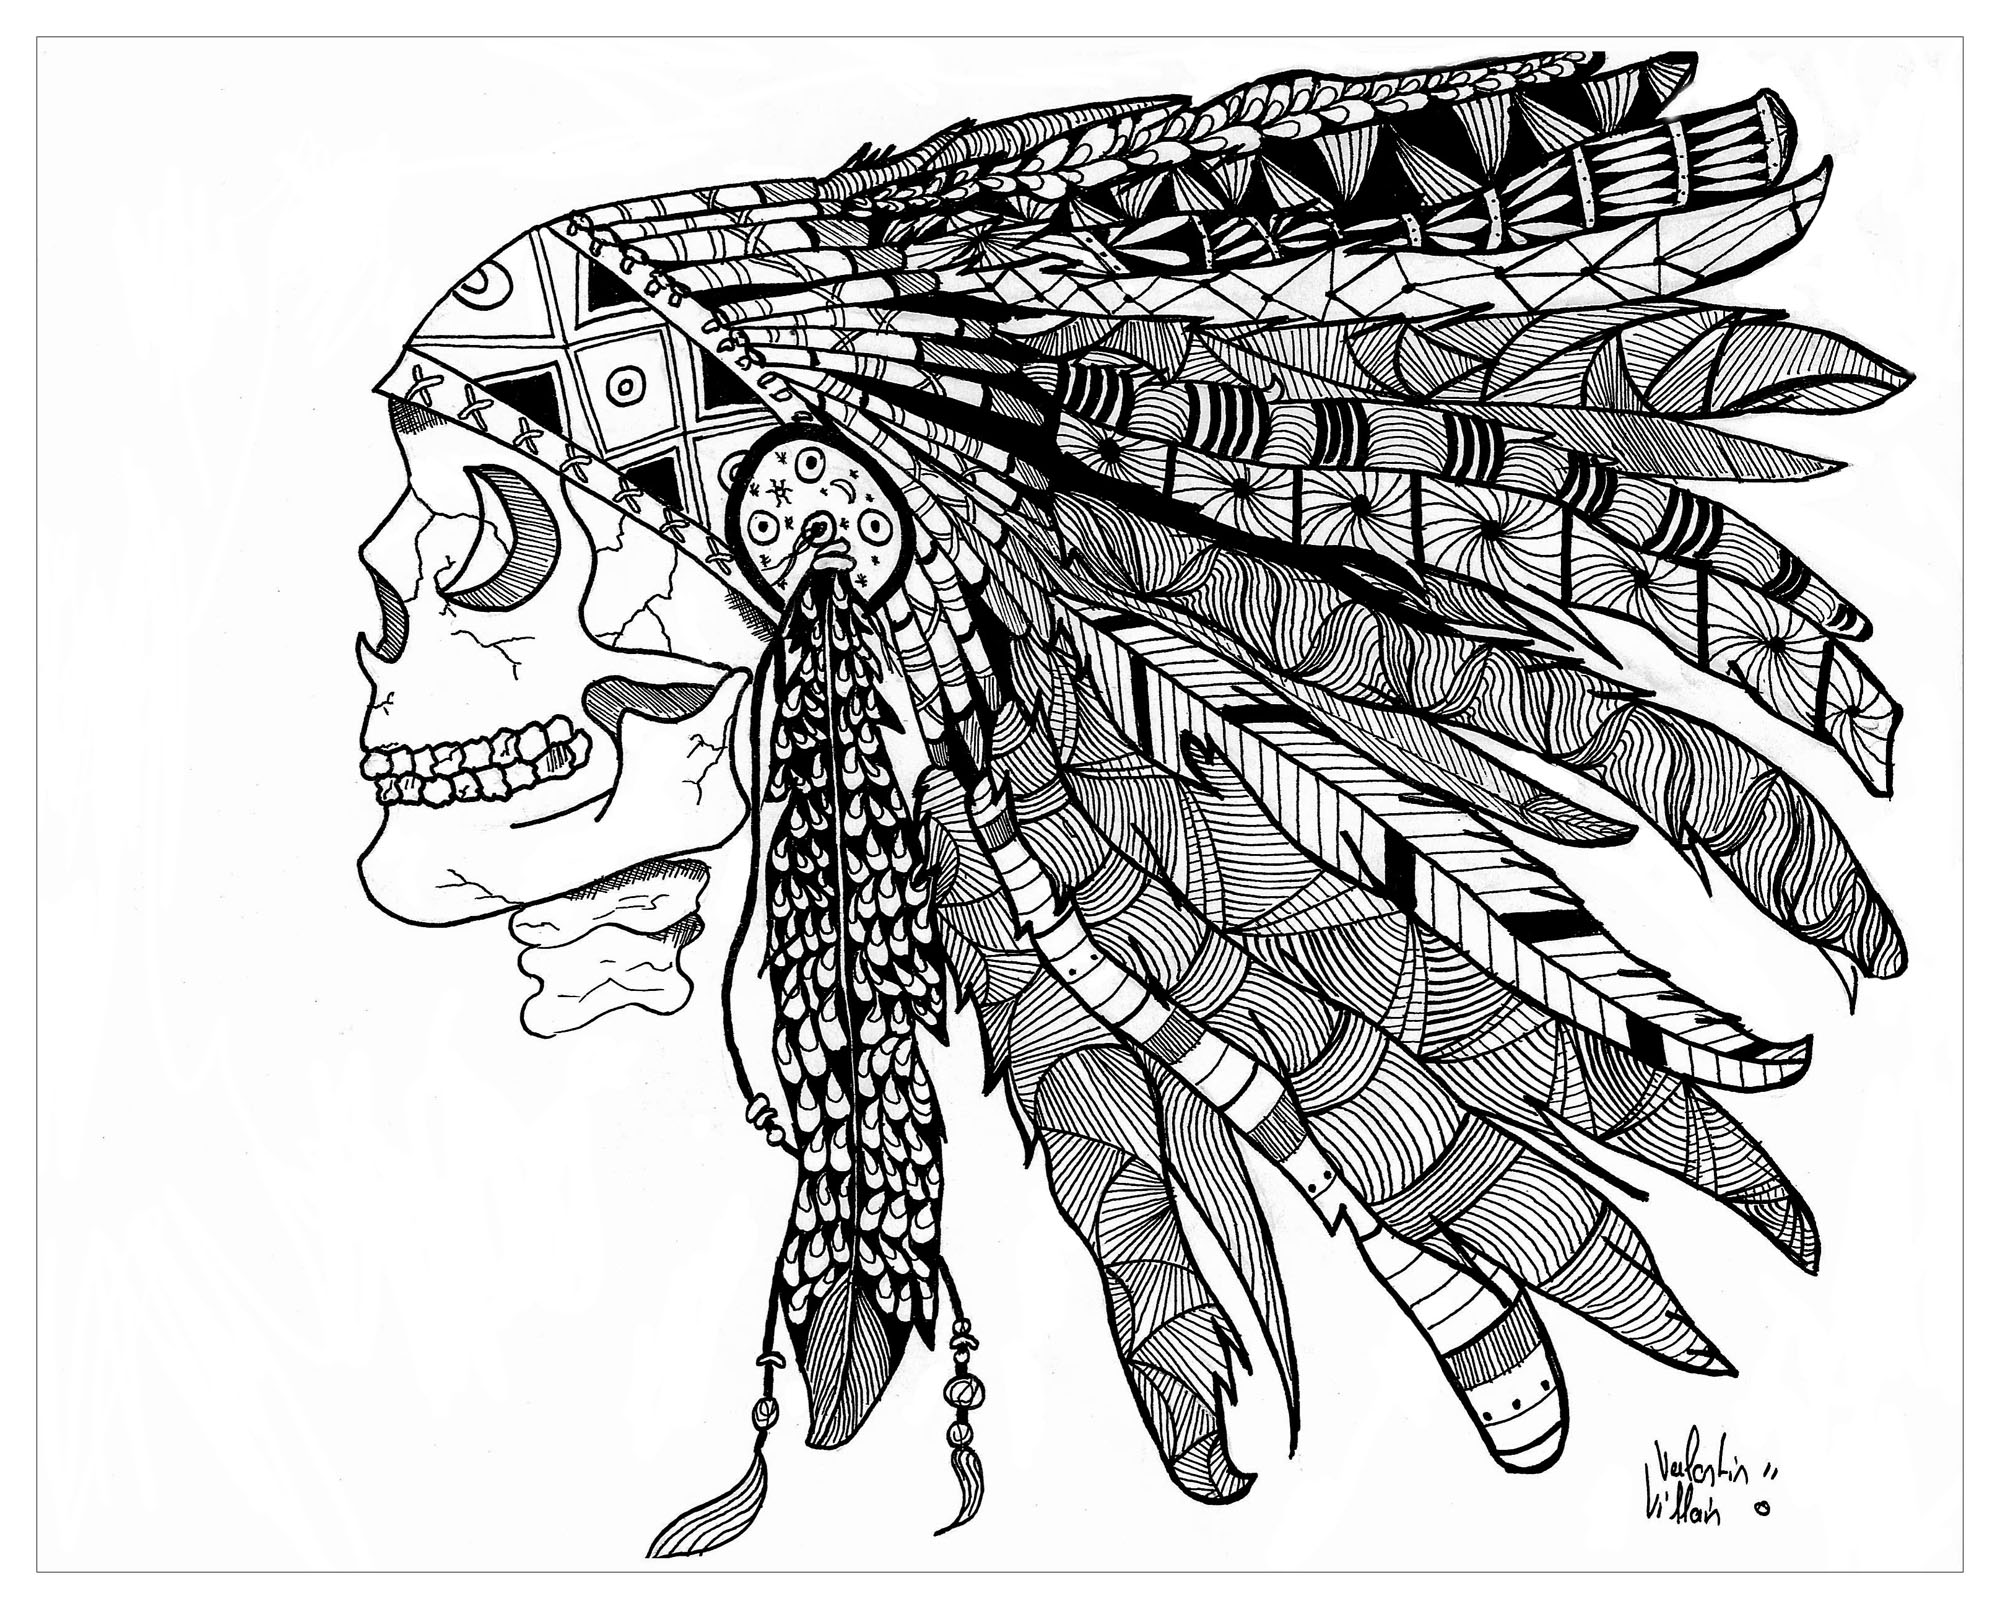 Zentangle drawing representing a Indian / Native American Skull